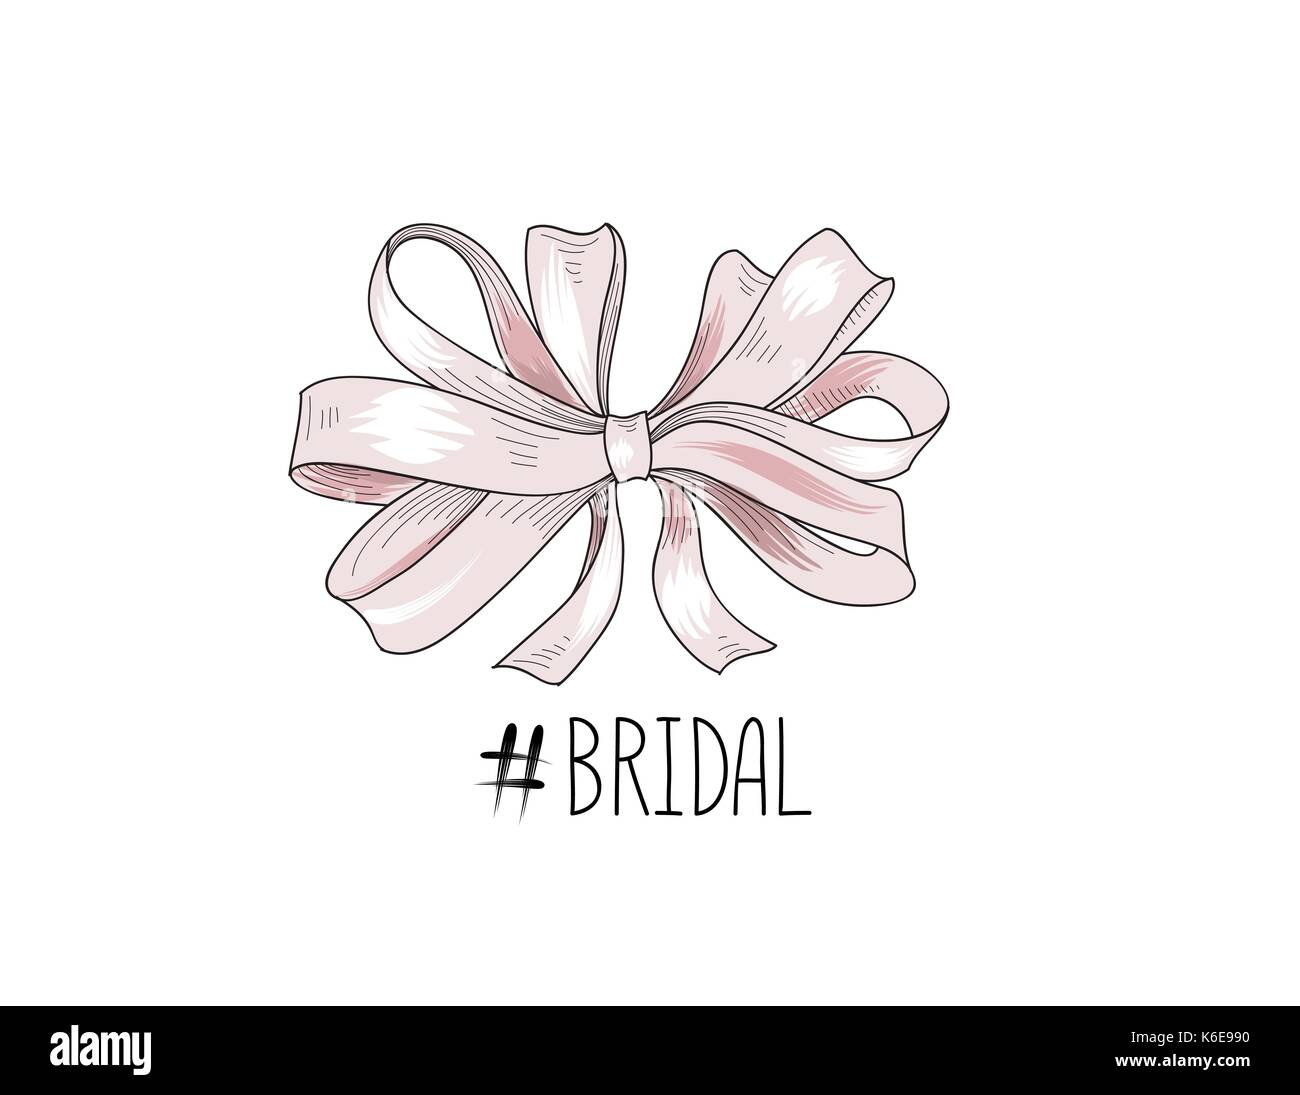 Bow drawn. Wed sign. Gentle cream pink bow ribbon isolated with tag Bridal Stock Vector